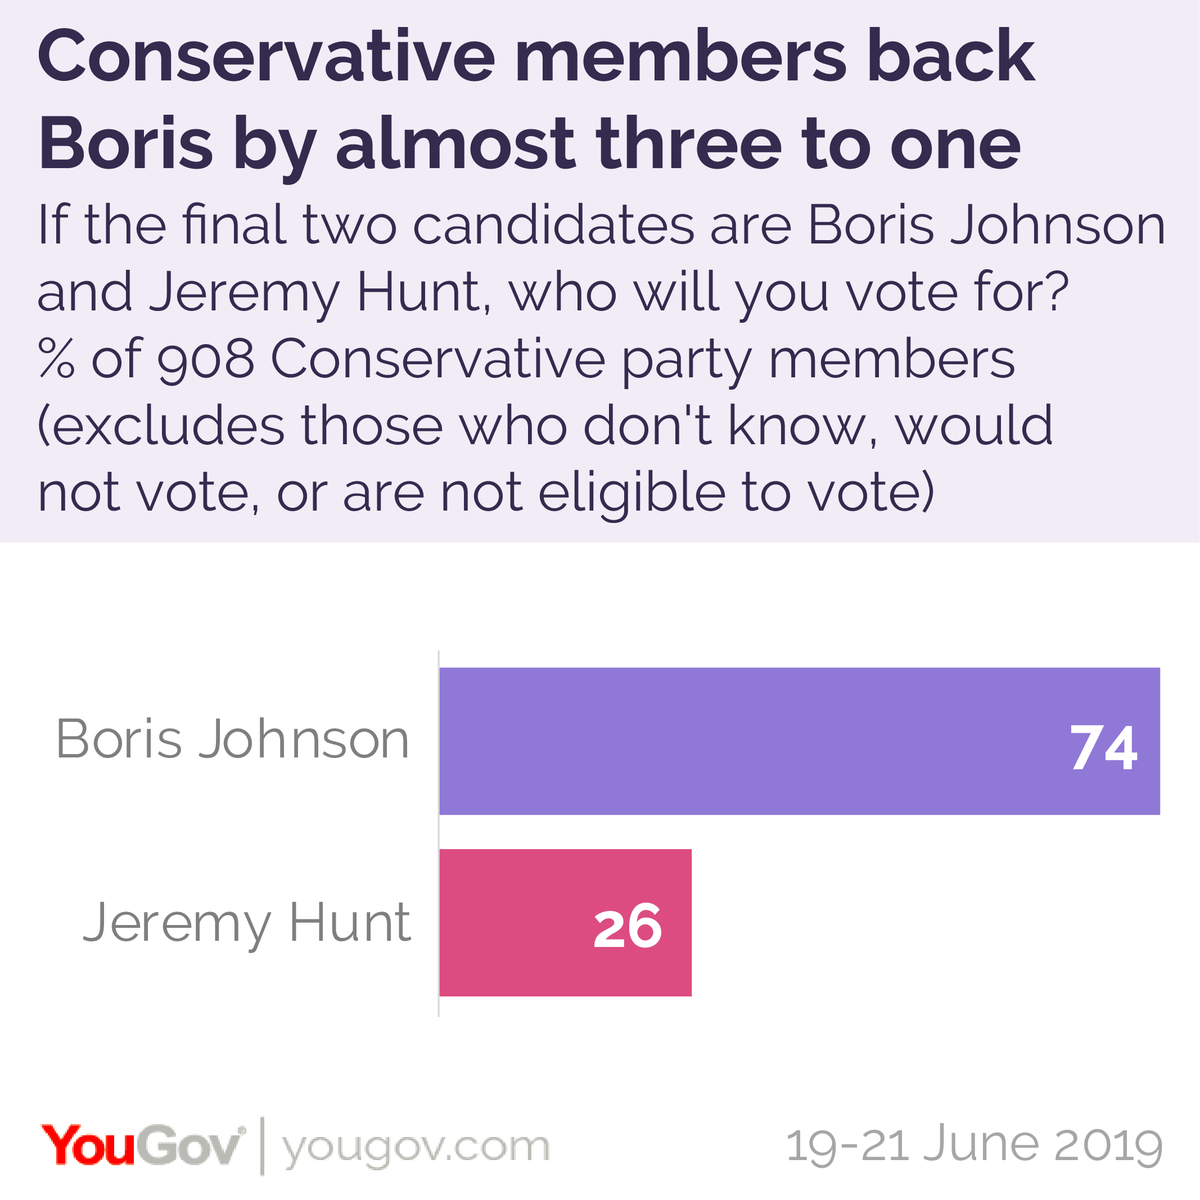 Our latest poll of Conservative party members shows that Boris Johnson is beating Jeremy Hunt in the leadership vote by 74% to 26% http://www.thetimes.co.uk/article/e4b87560-9467-11e9-a1cf-8a70d1d684b0 …